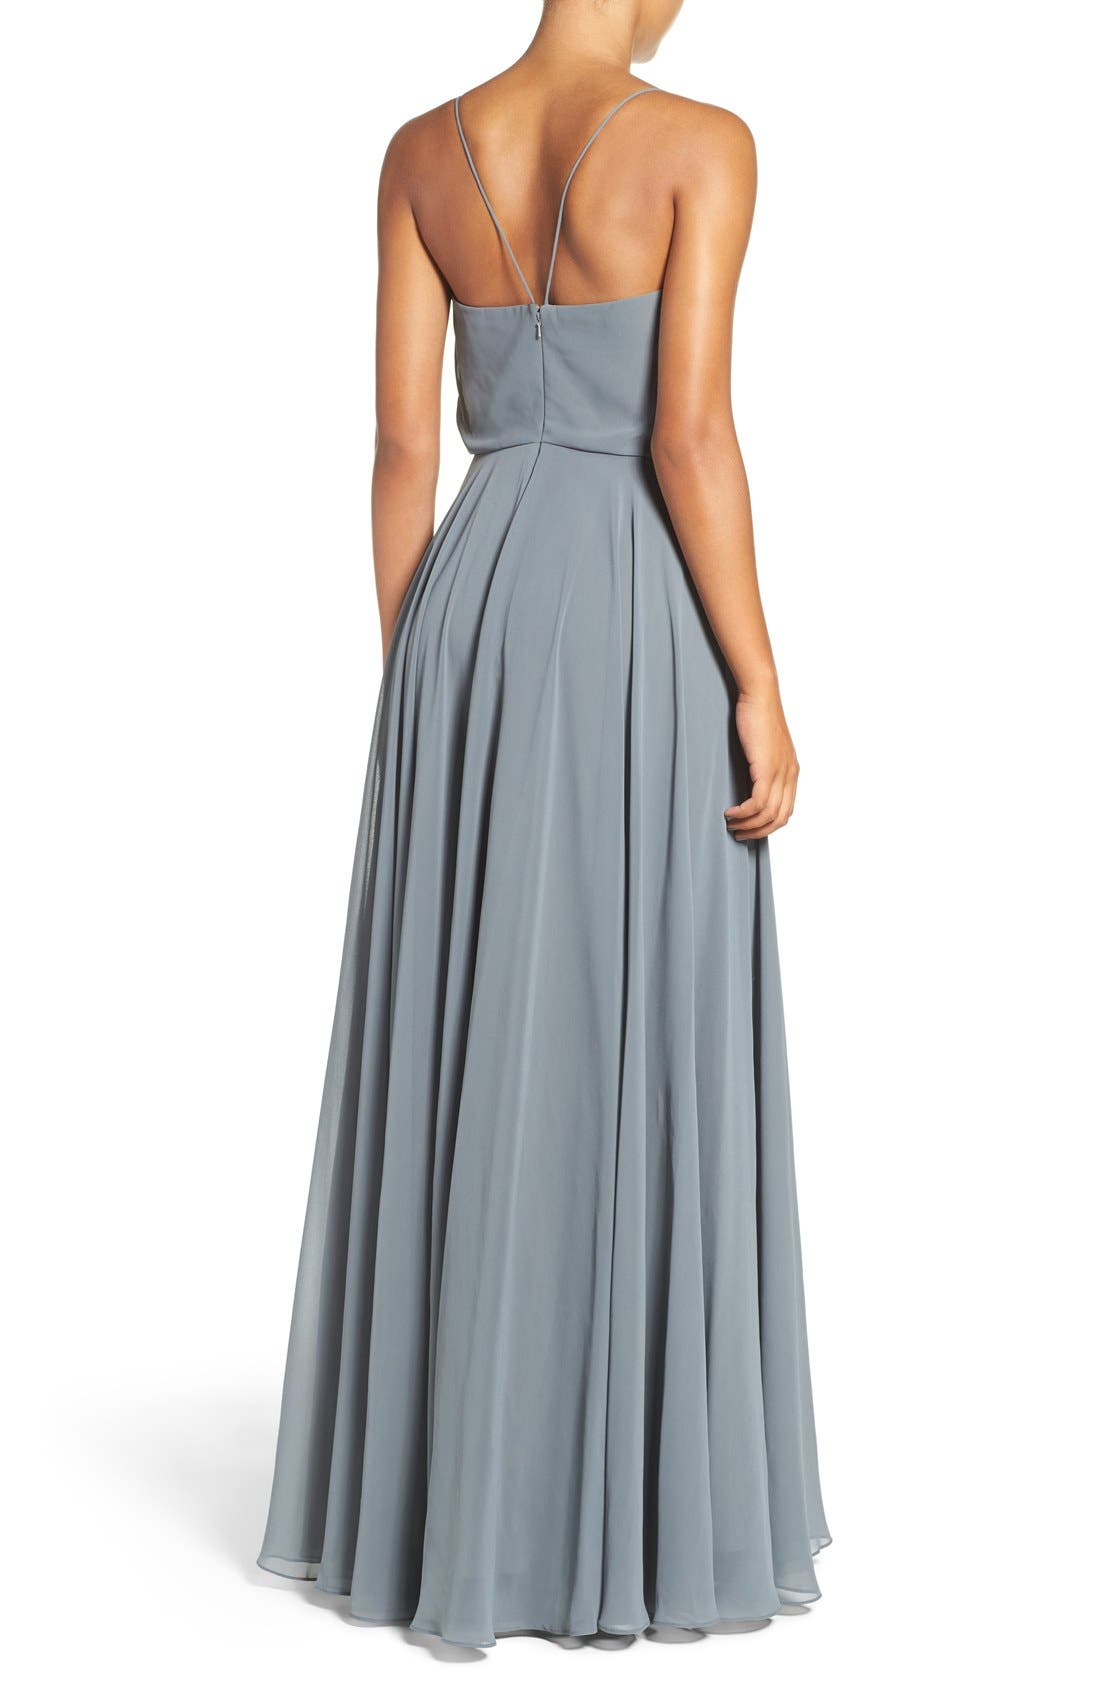 Green Bridesmaid Dresses | Nordstrom